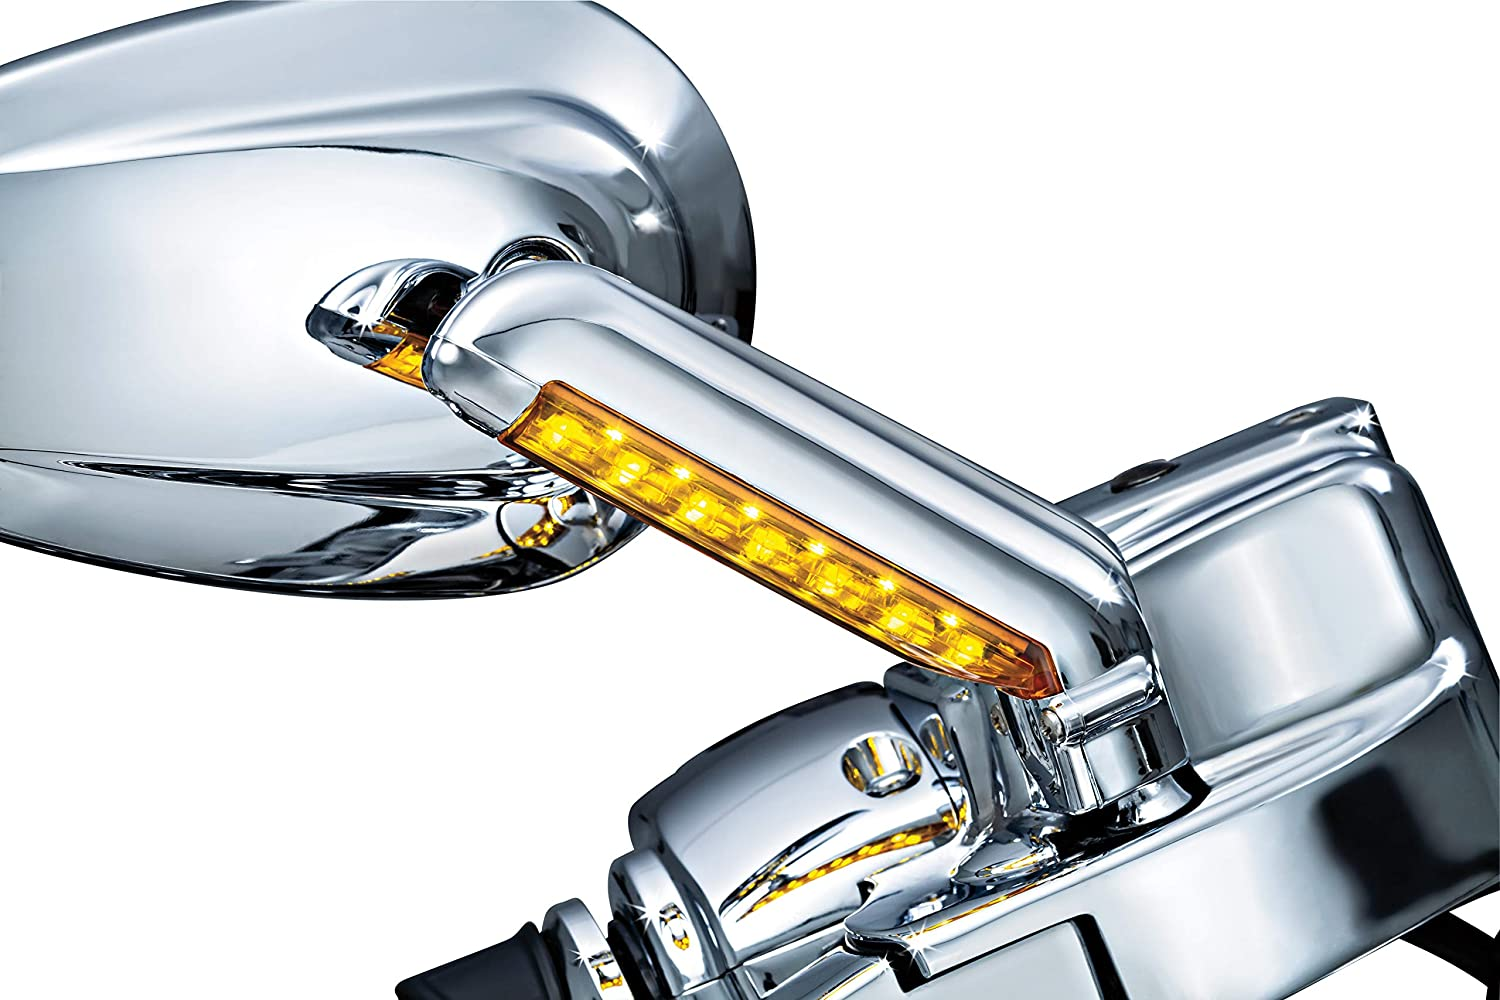 Chrome Kuryakyn 1757 Motorcycle Handlebar Accessory 1 Pair Rear View Side Mirror Stem Covers with LED Running//Turn Signal//Blinker Lights for Harley-Davidson Motorcycles